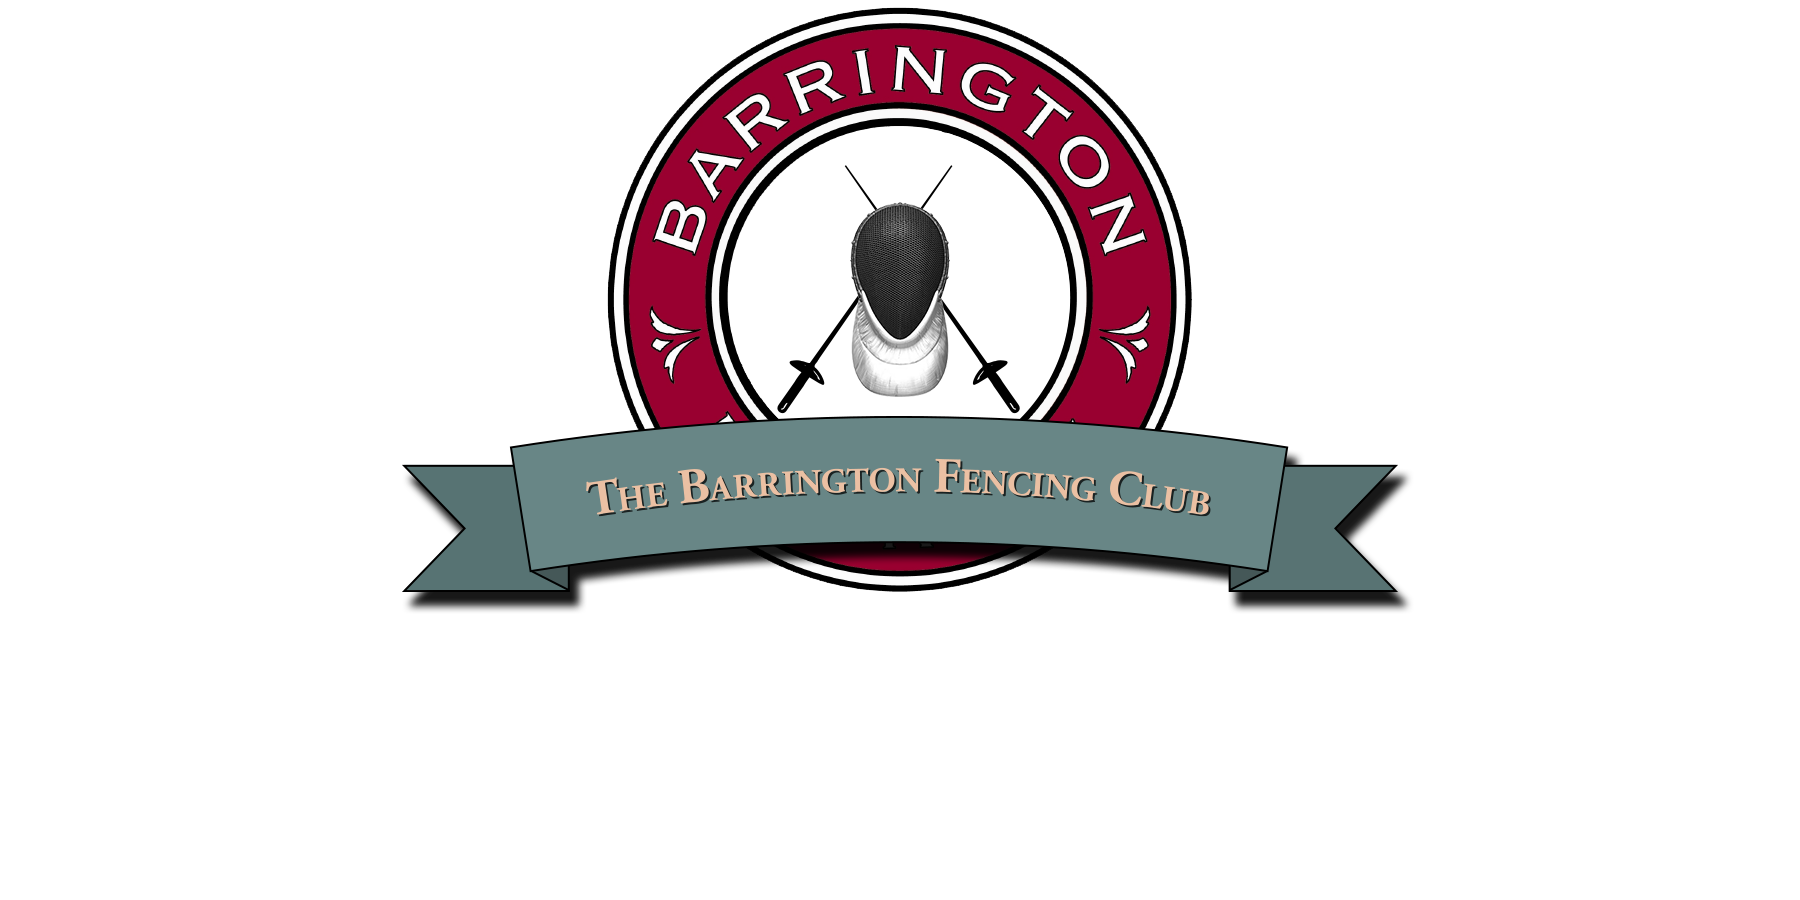 The Barrington Fencing Club